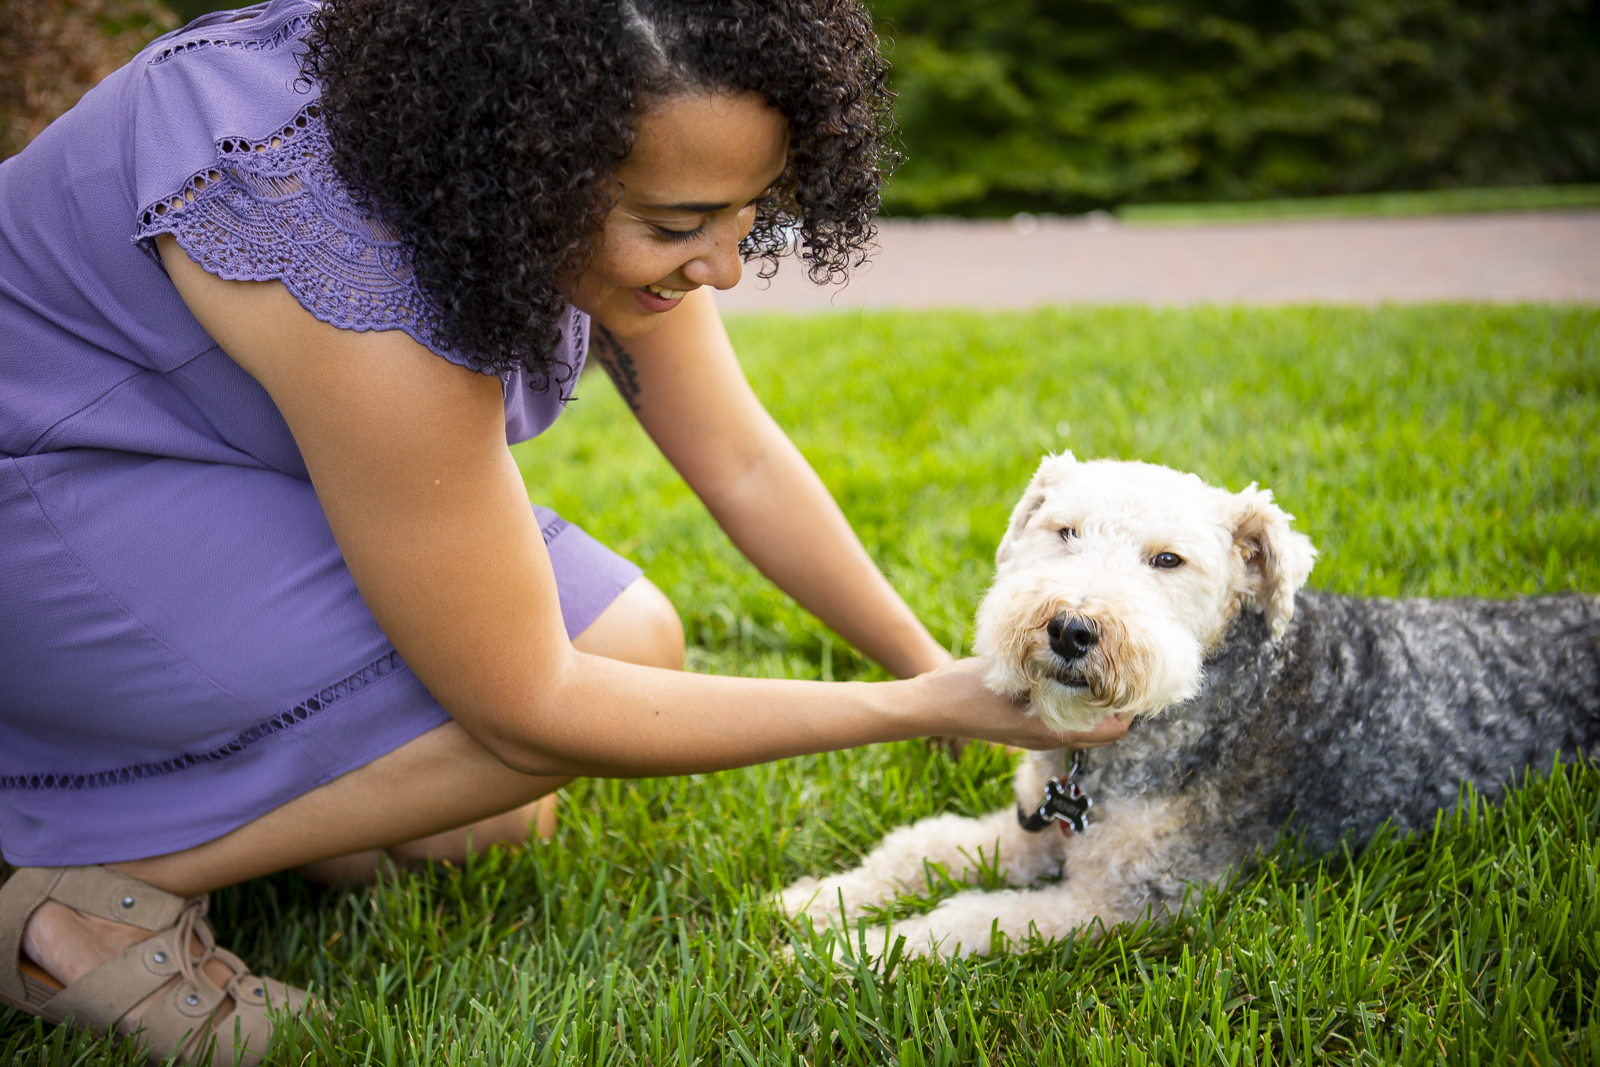 Dog in lawn with flea and tick treatment